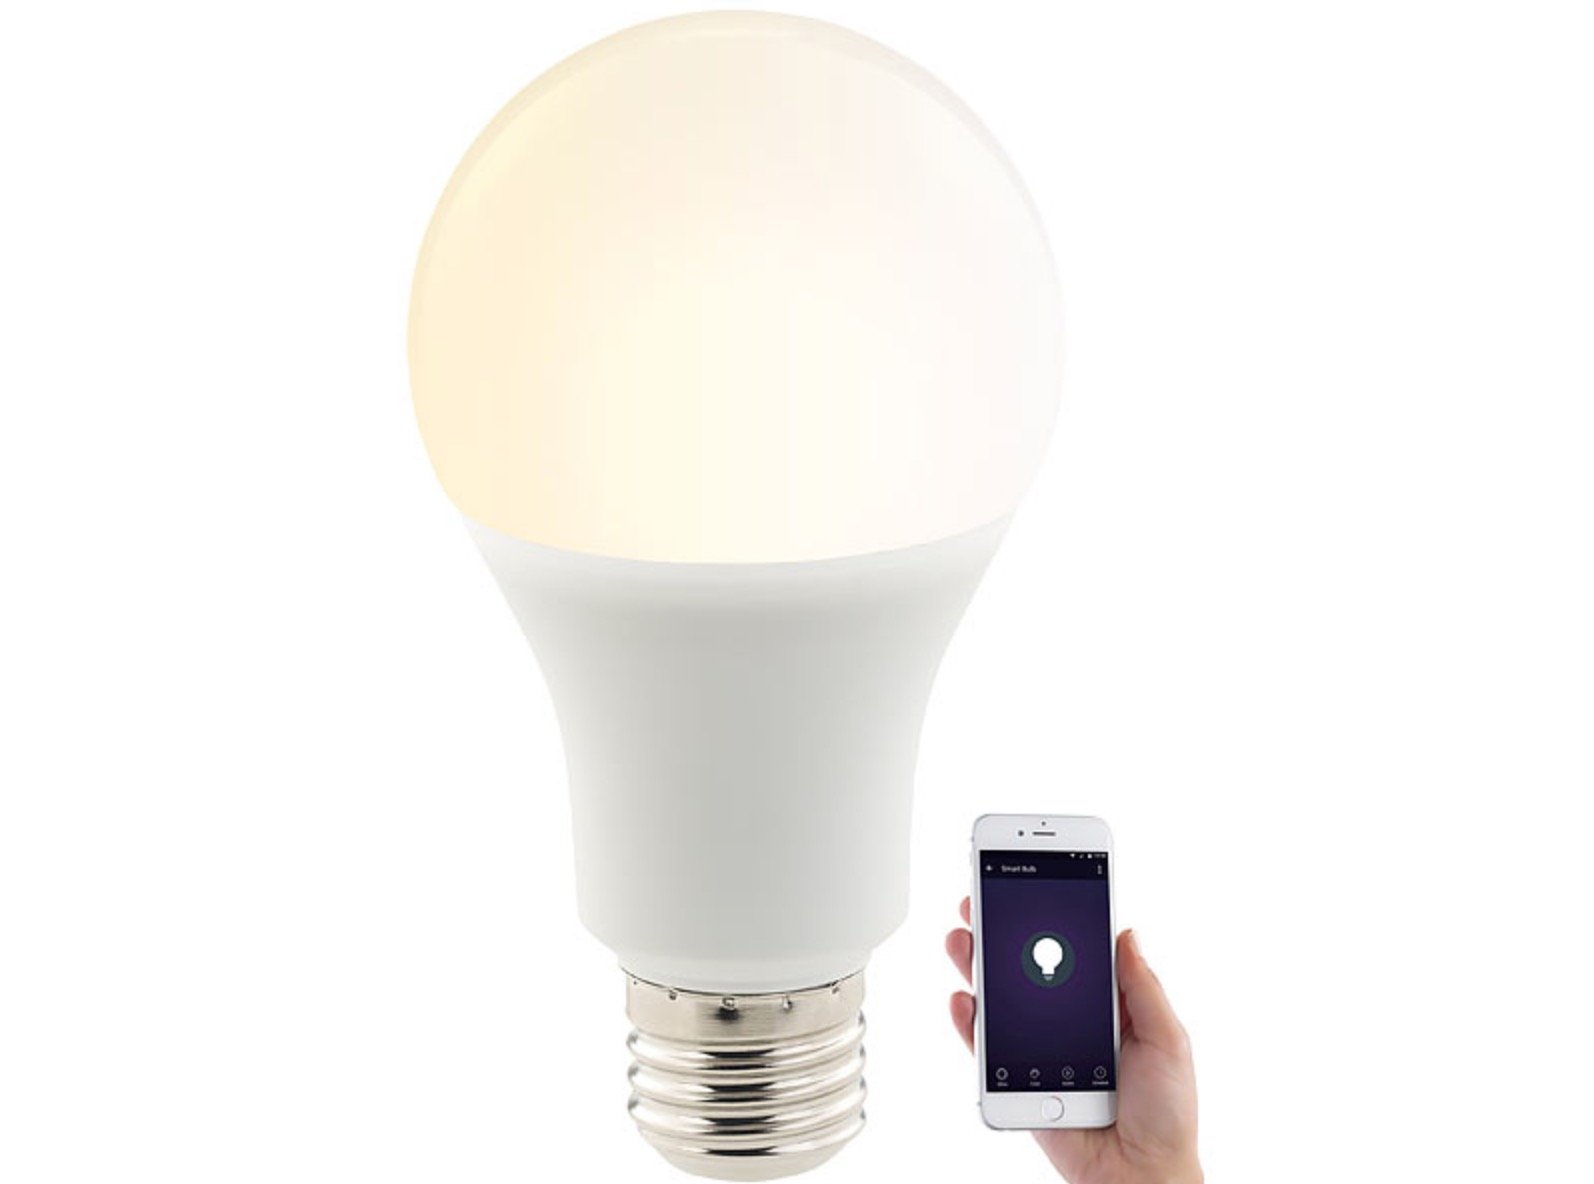 Die smarten luminea wlan led lampen im test home of smart parisarafo Image collections